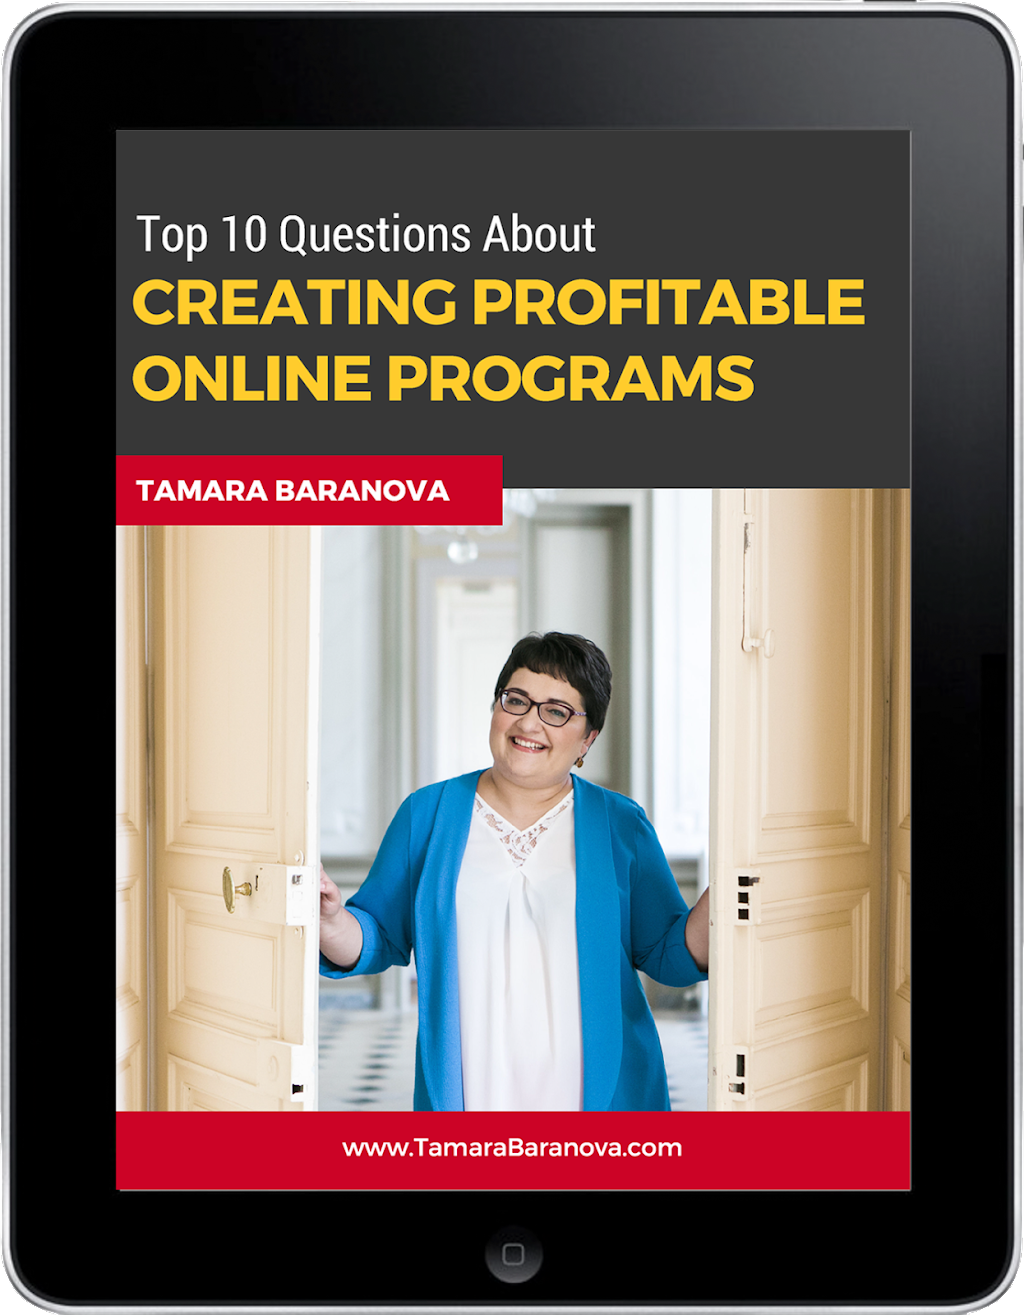 Top 10 Question About Creating a Profitable Online Program